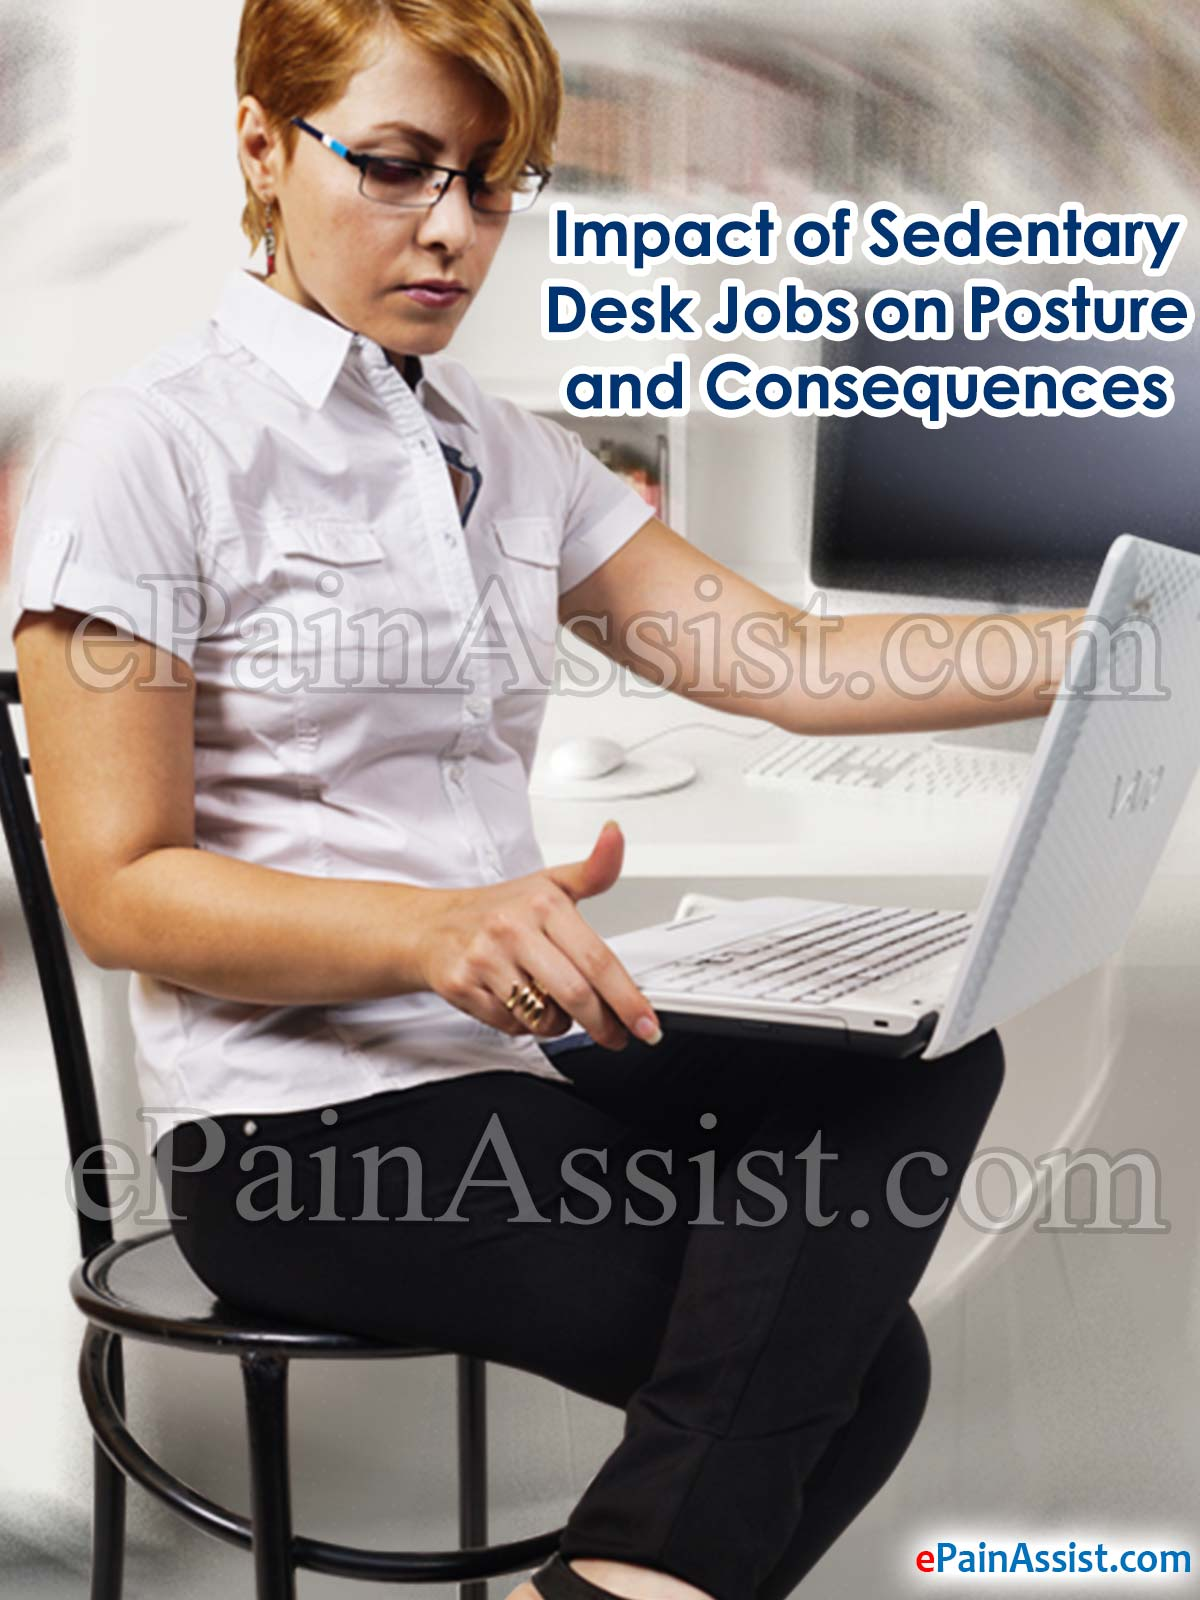 Impact of Sedentary Desk Jobs on Posture and Consequences